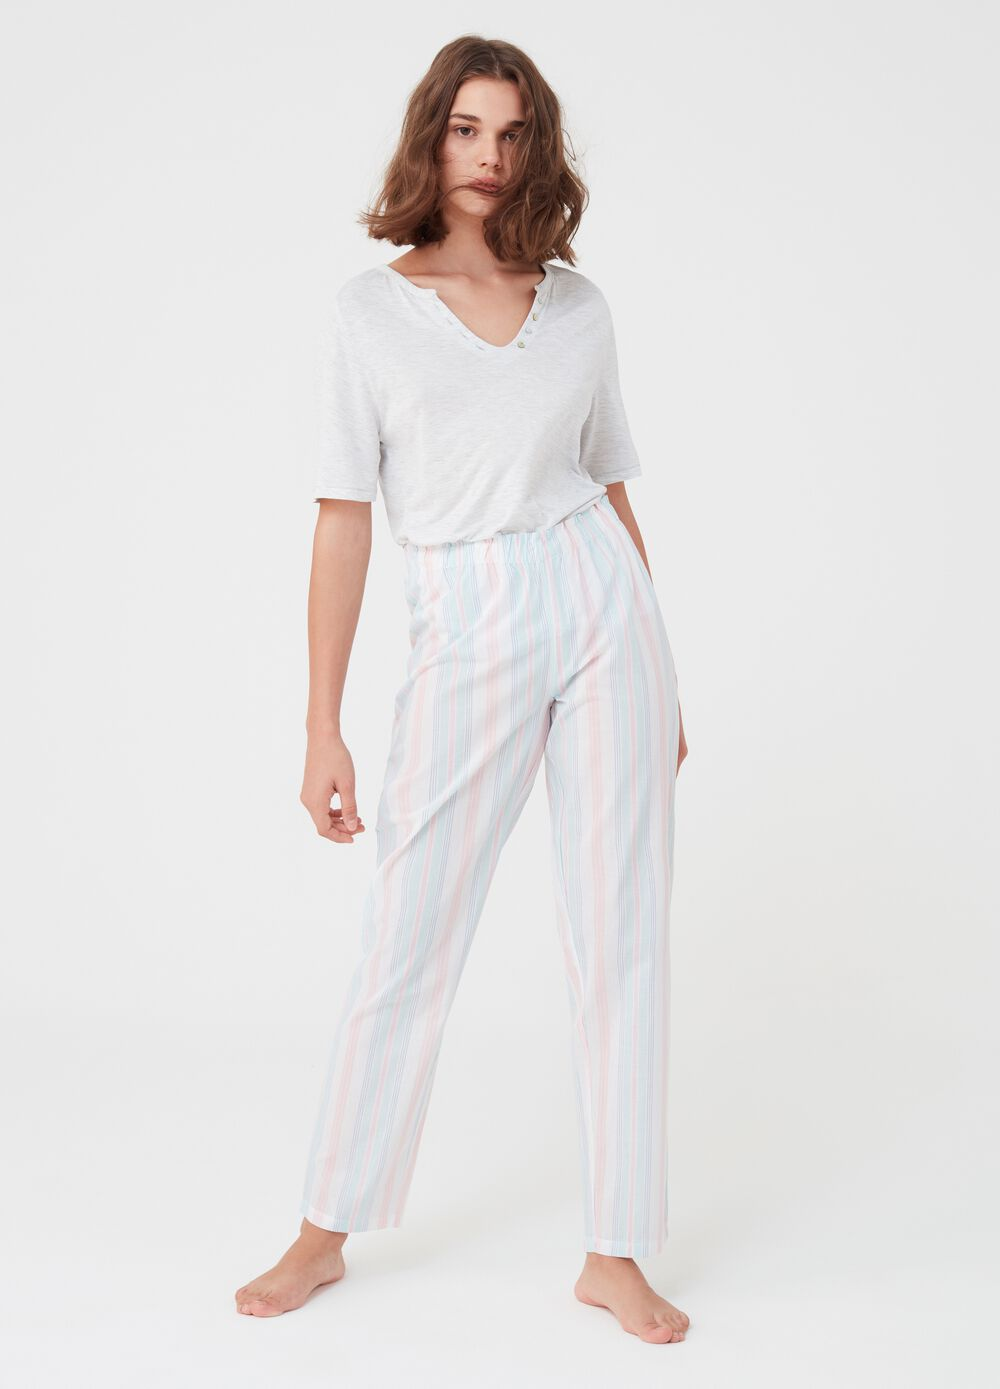 Striped pyjamas with T-shirt and trousers